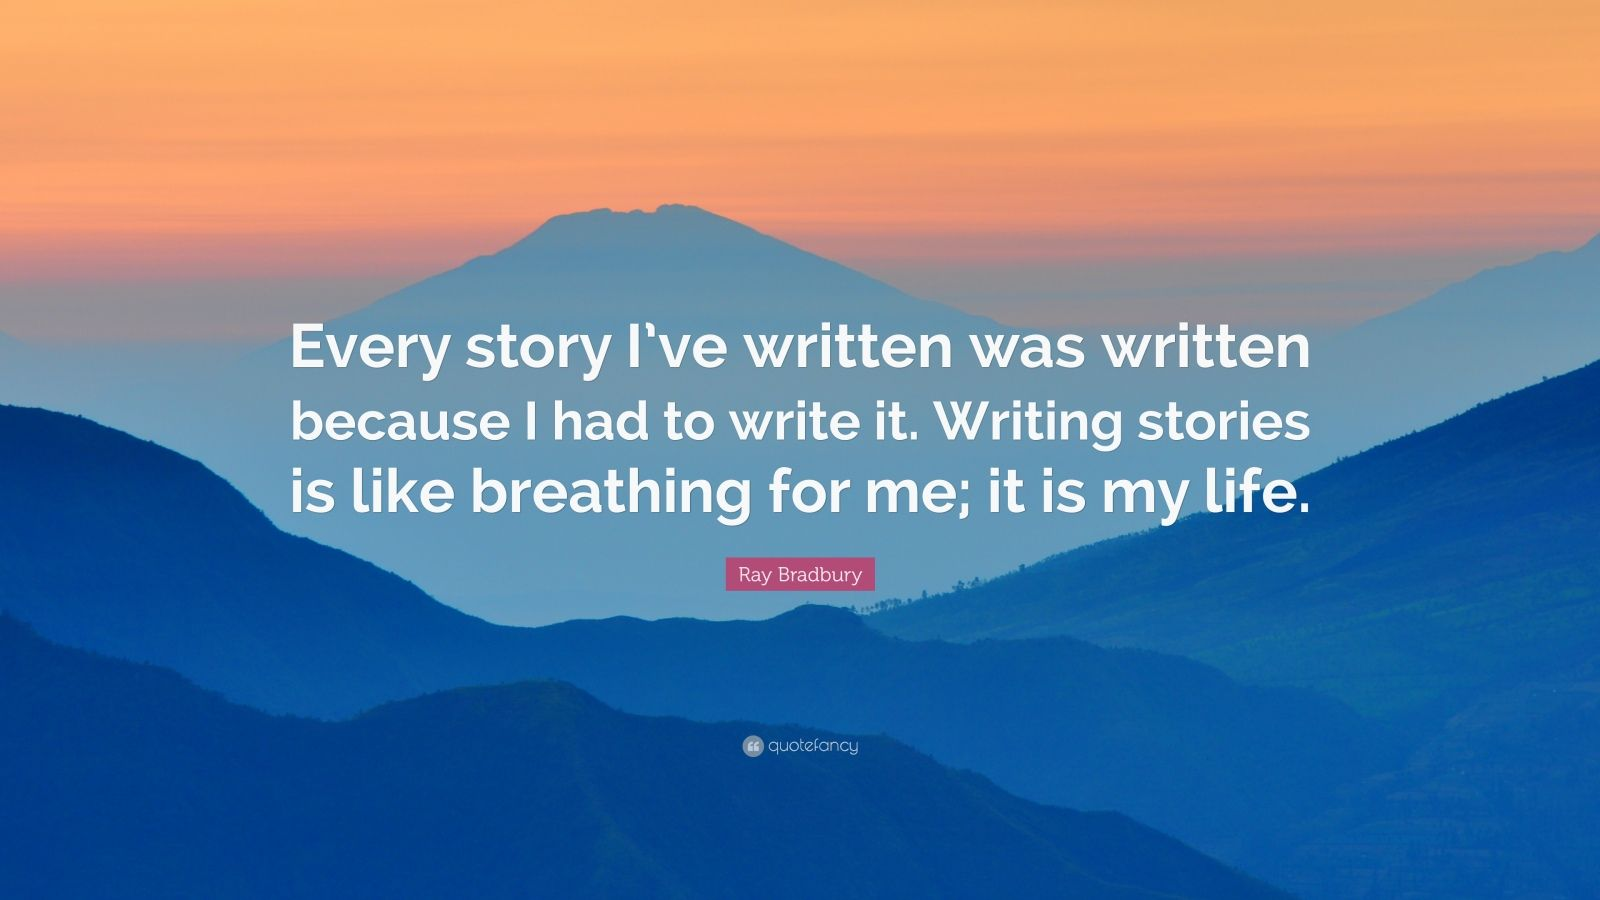 """Ray Bradbury Quote: """"Every story I've written was written because I had to write it. Writing stories is like breathing for me; it is my life."""""""